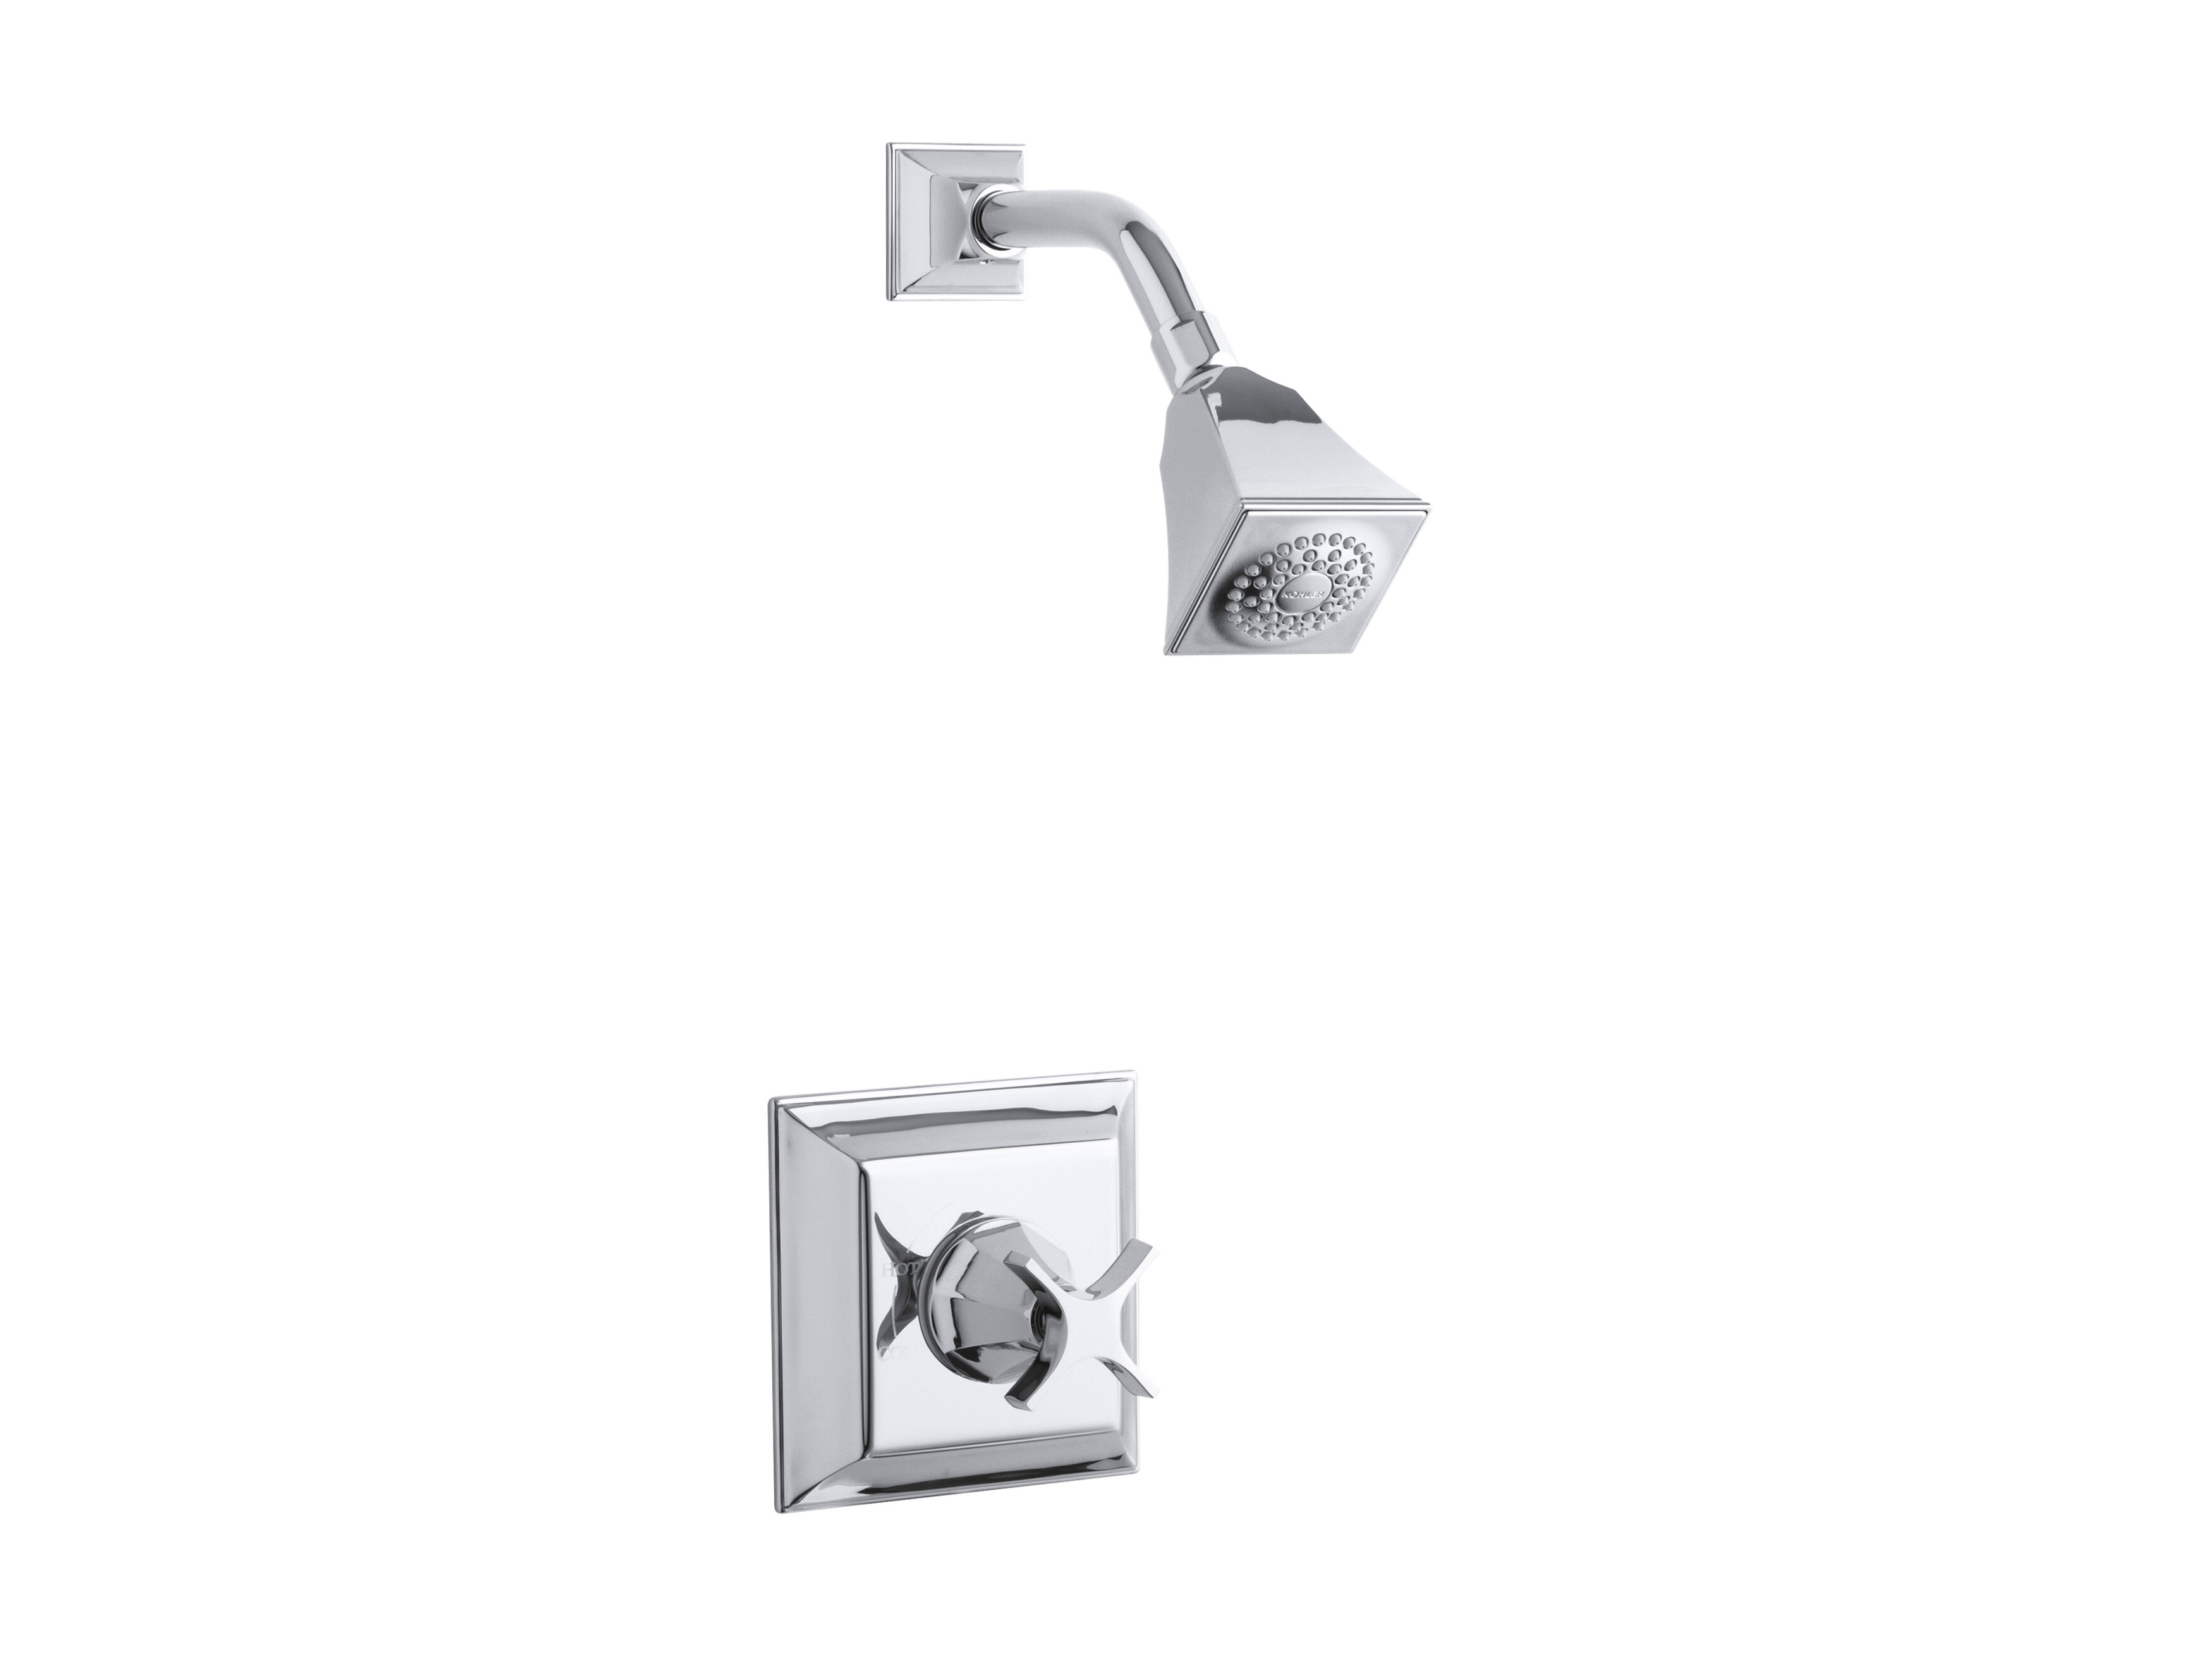 Memoirs Stately Rite Temp Pressure Balancing Shower Faucet Trim With Cross Handle Valve Not Included